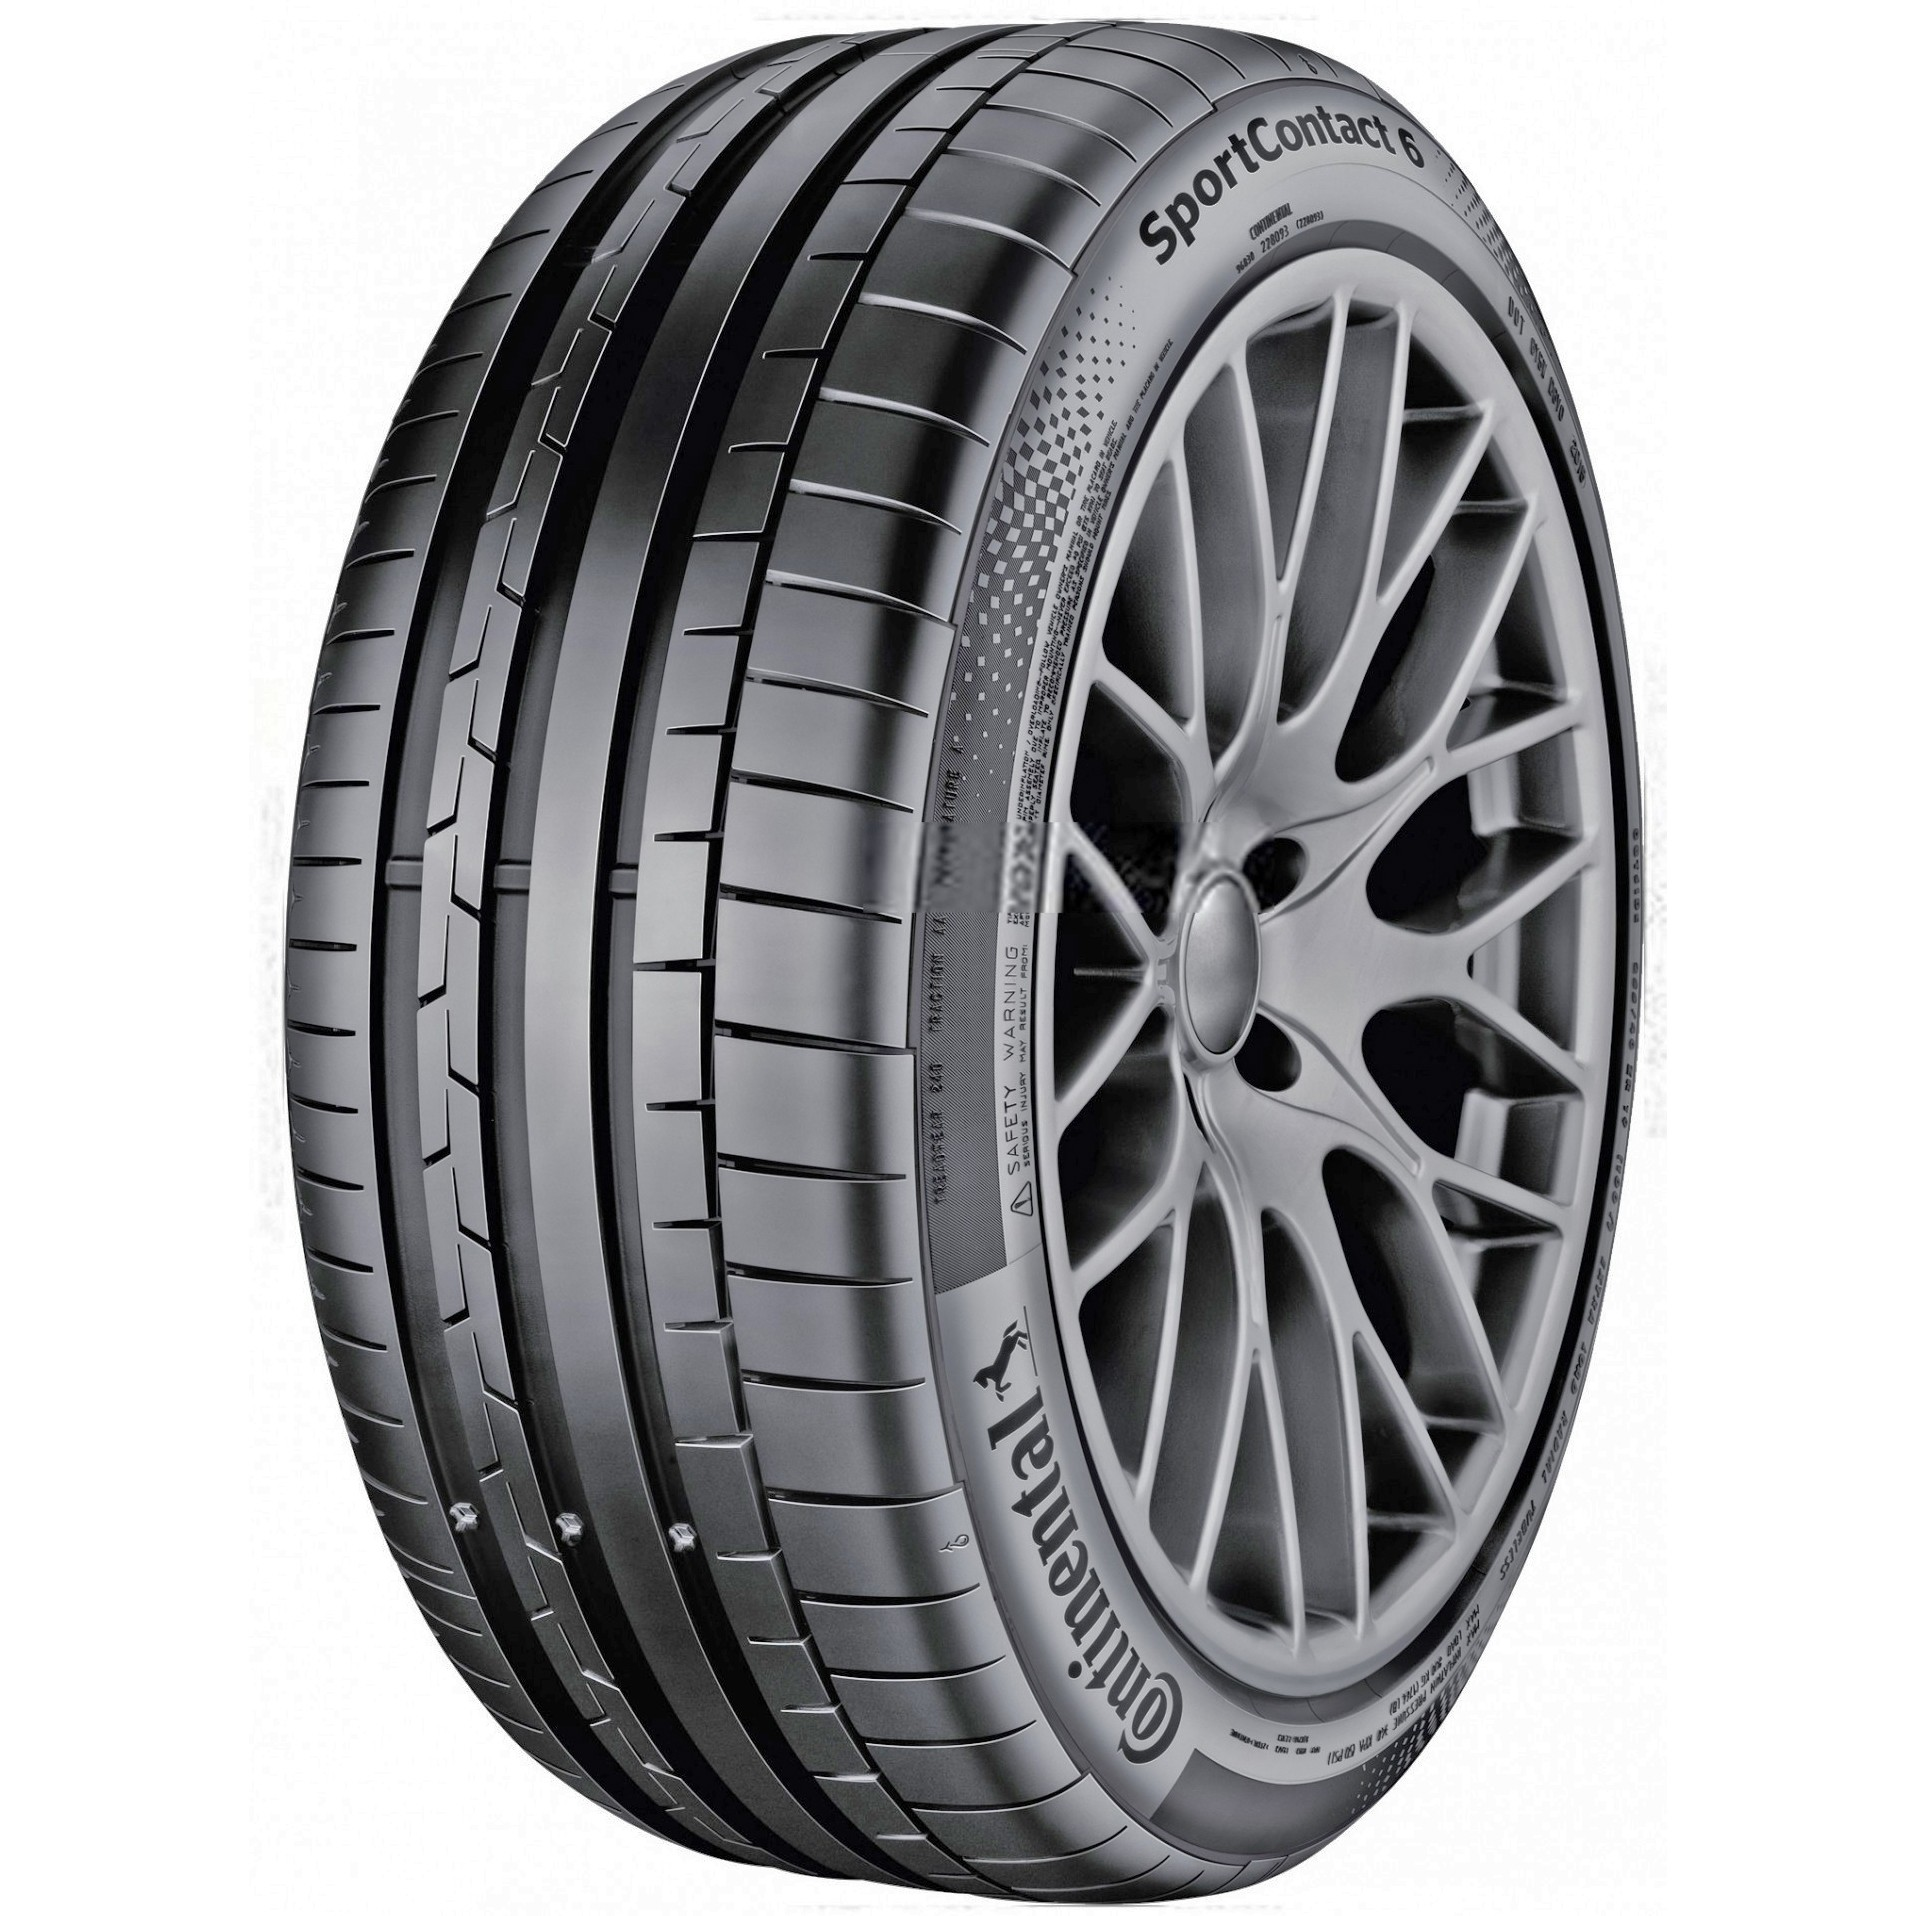 Continental SportContact 6 295/35 R22